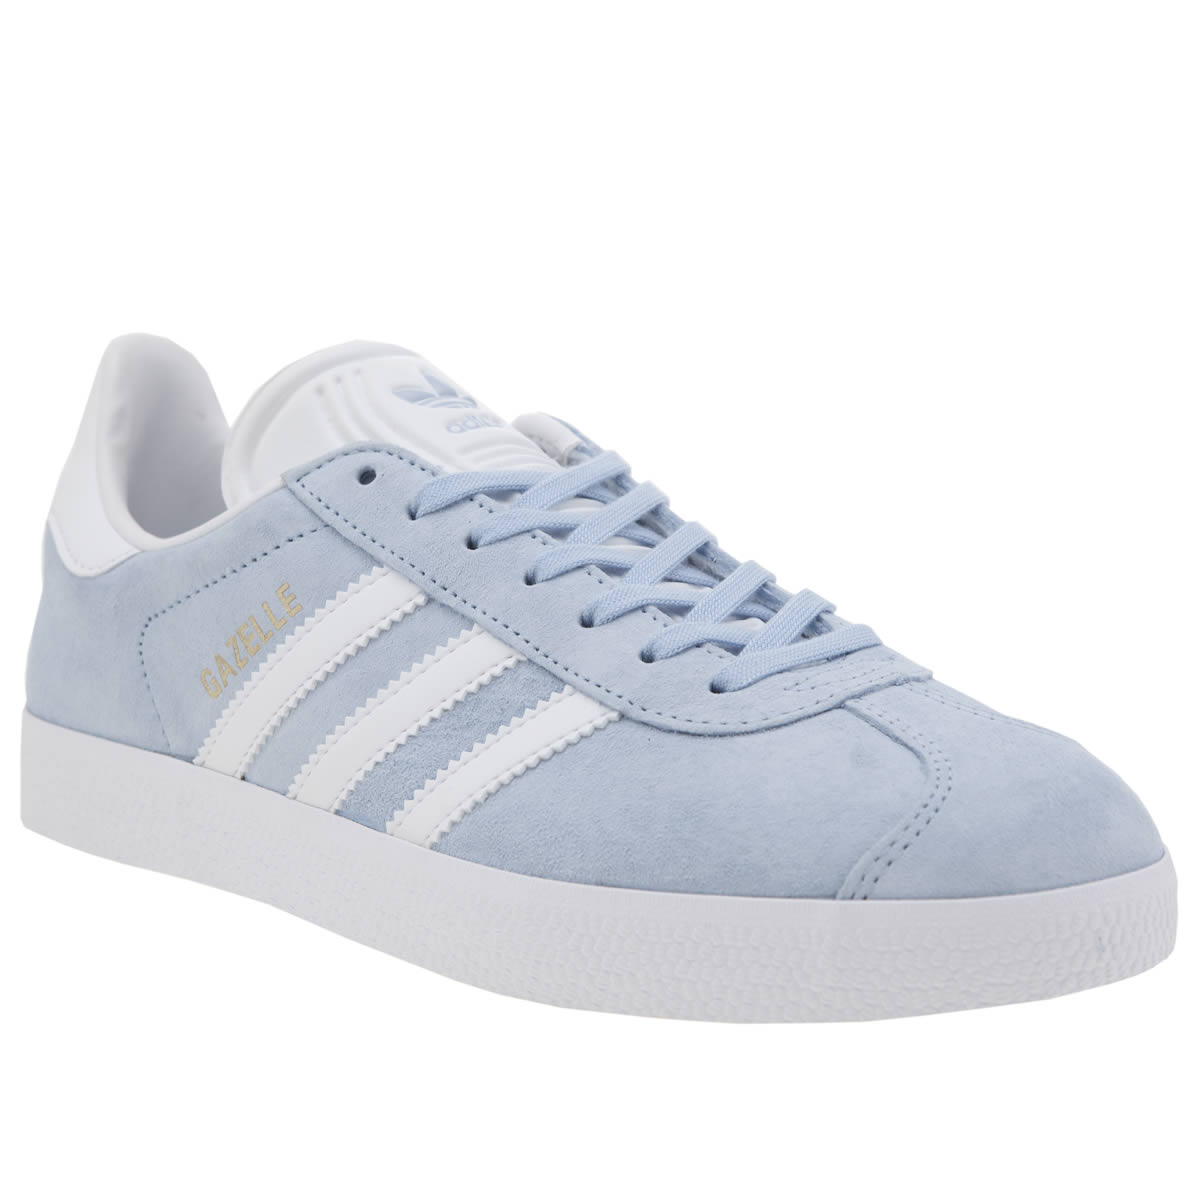 promo code 19064 2c746 Adidas Superstar Green Stripe herbusinessuk.co.uk